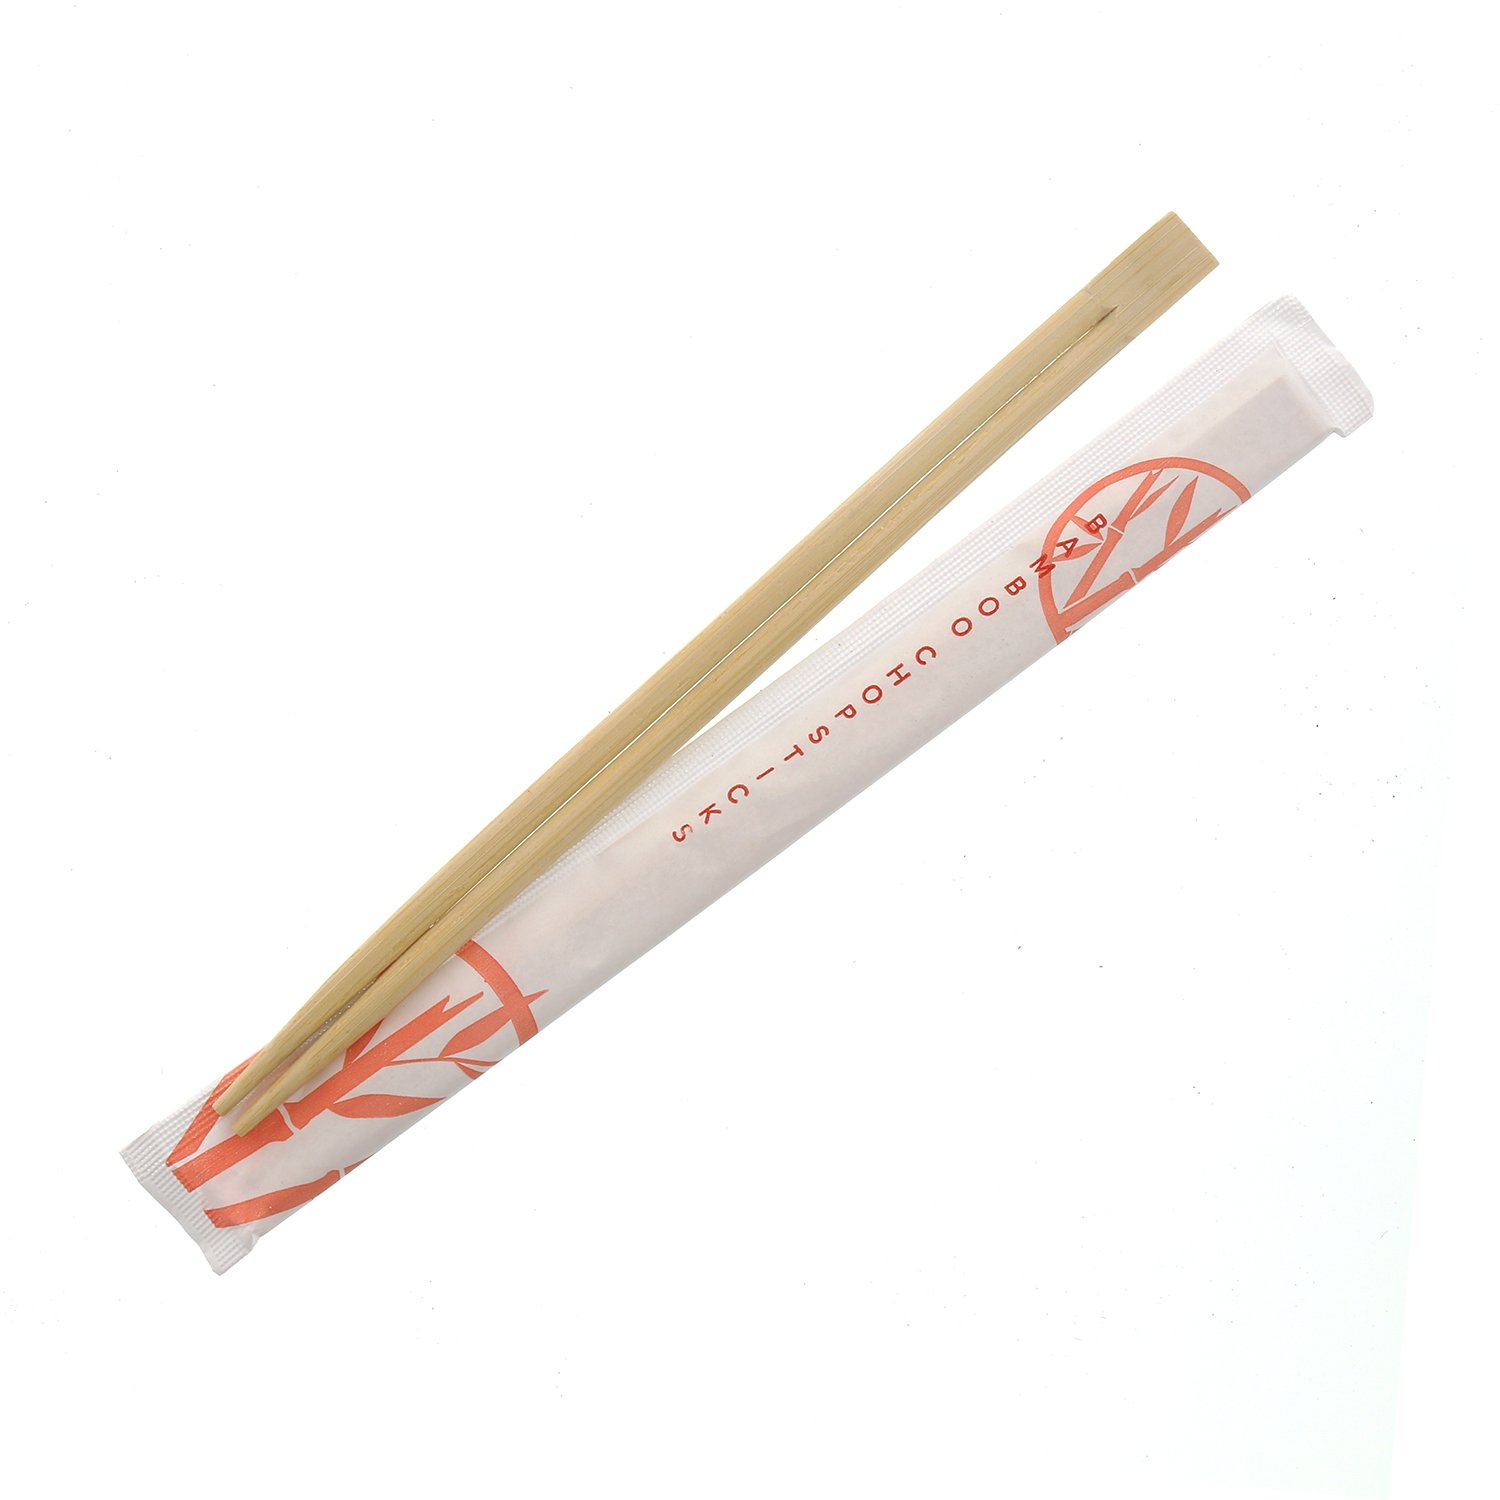 Royal Premium Disposable Bamboo Chopsticks in Sleeves, 9'', Connected at the Top, UV Treated, Bag of 100